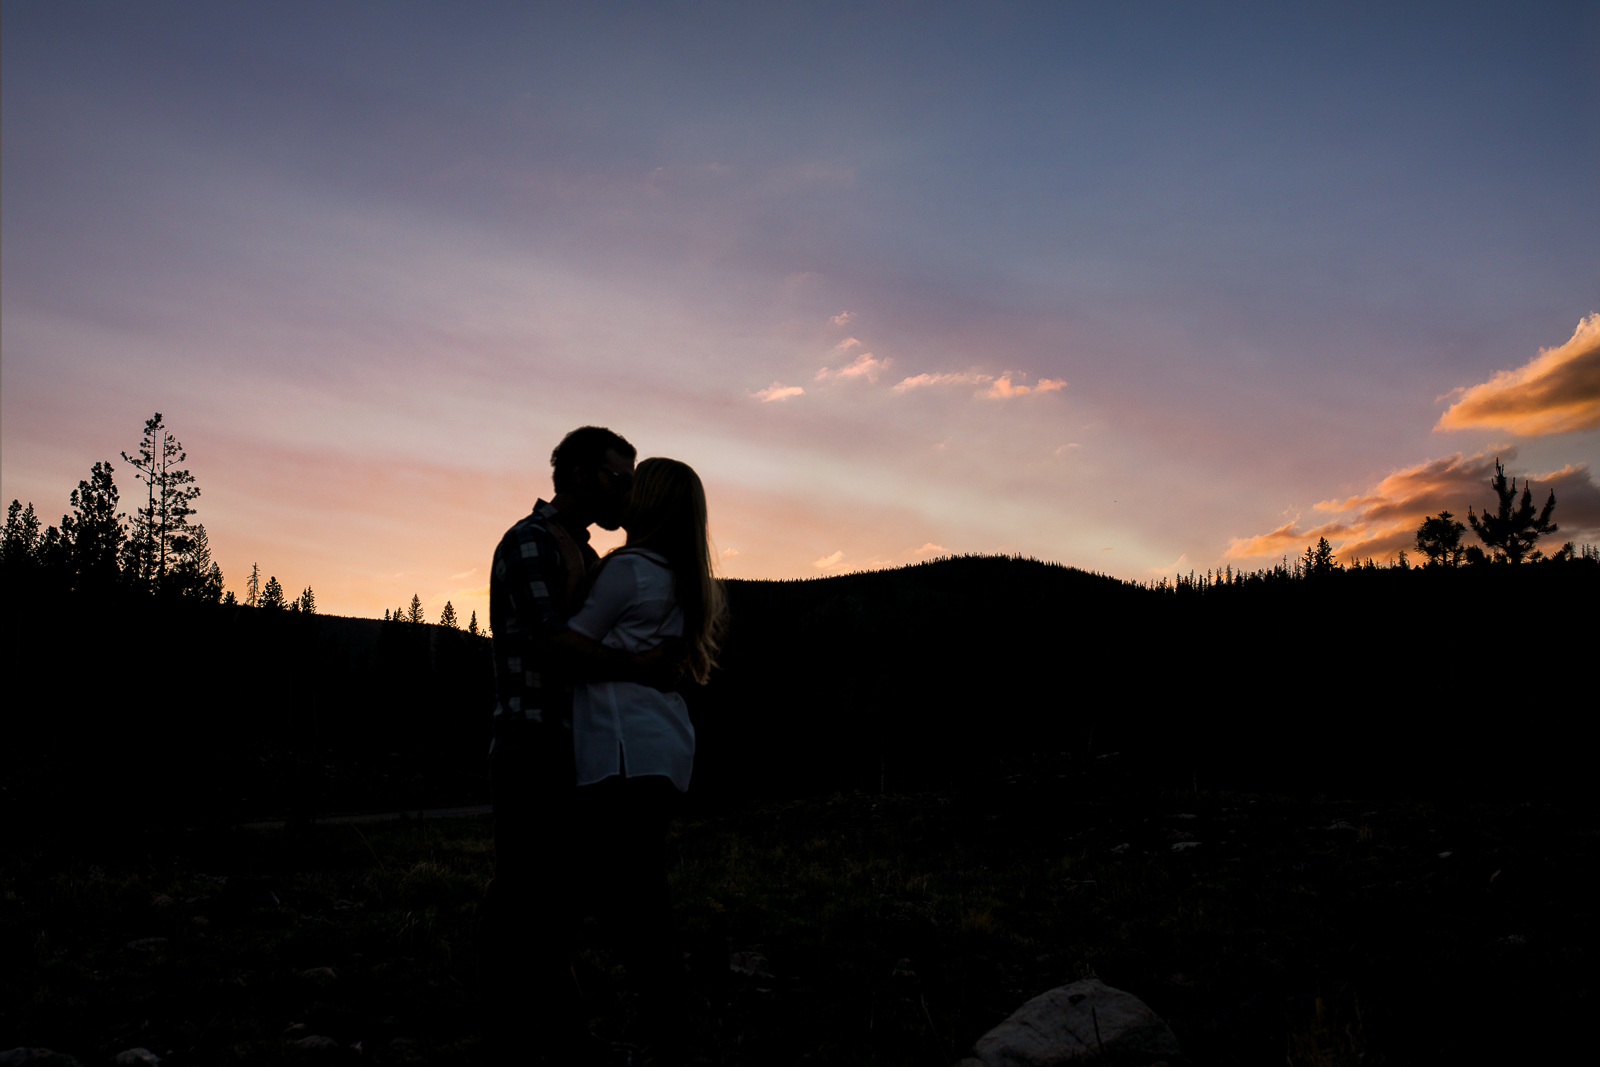 Engagement photography in the mountains of Wyoming by Laramie based photographer. Sunset in Wyoming mountains